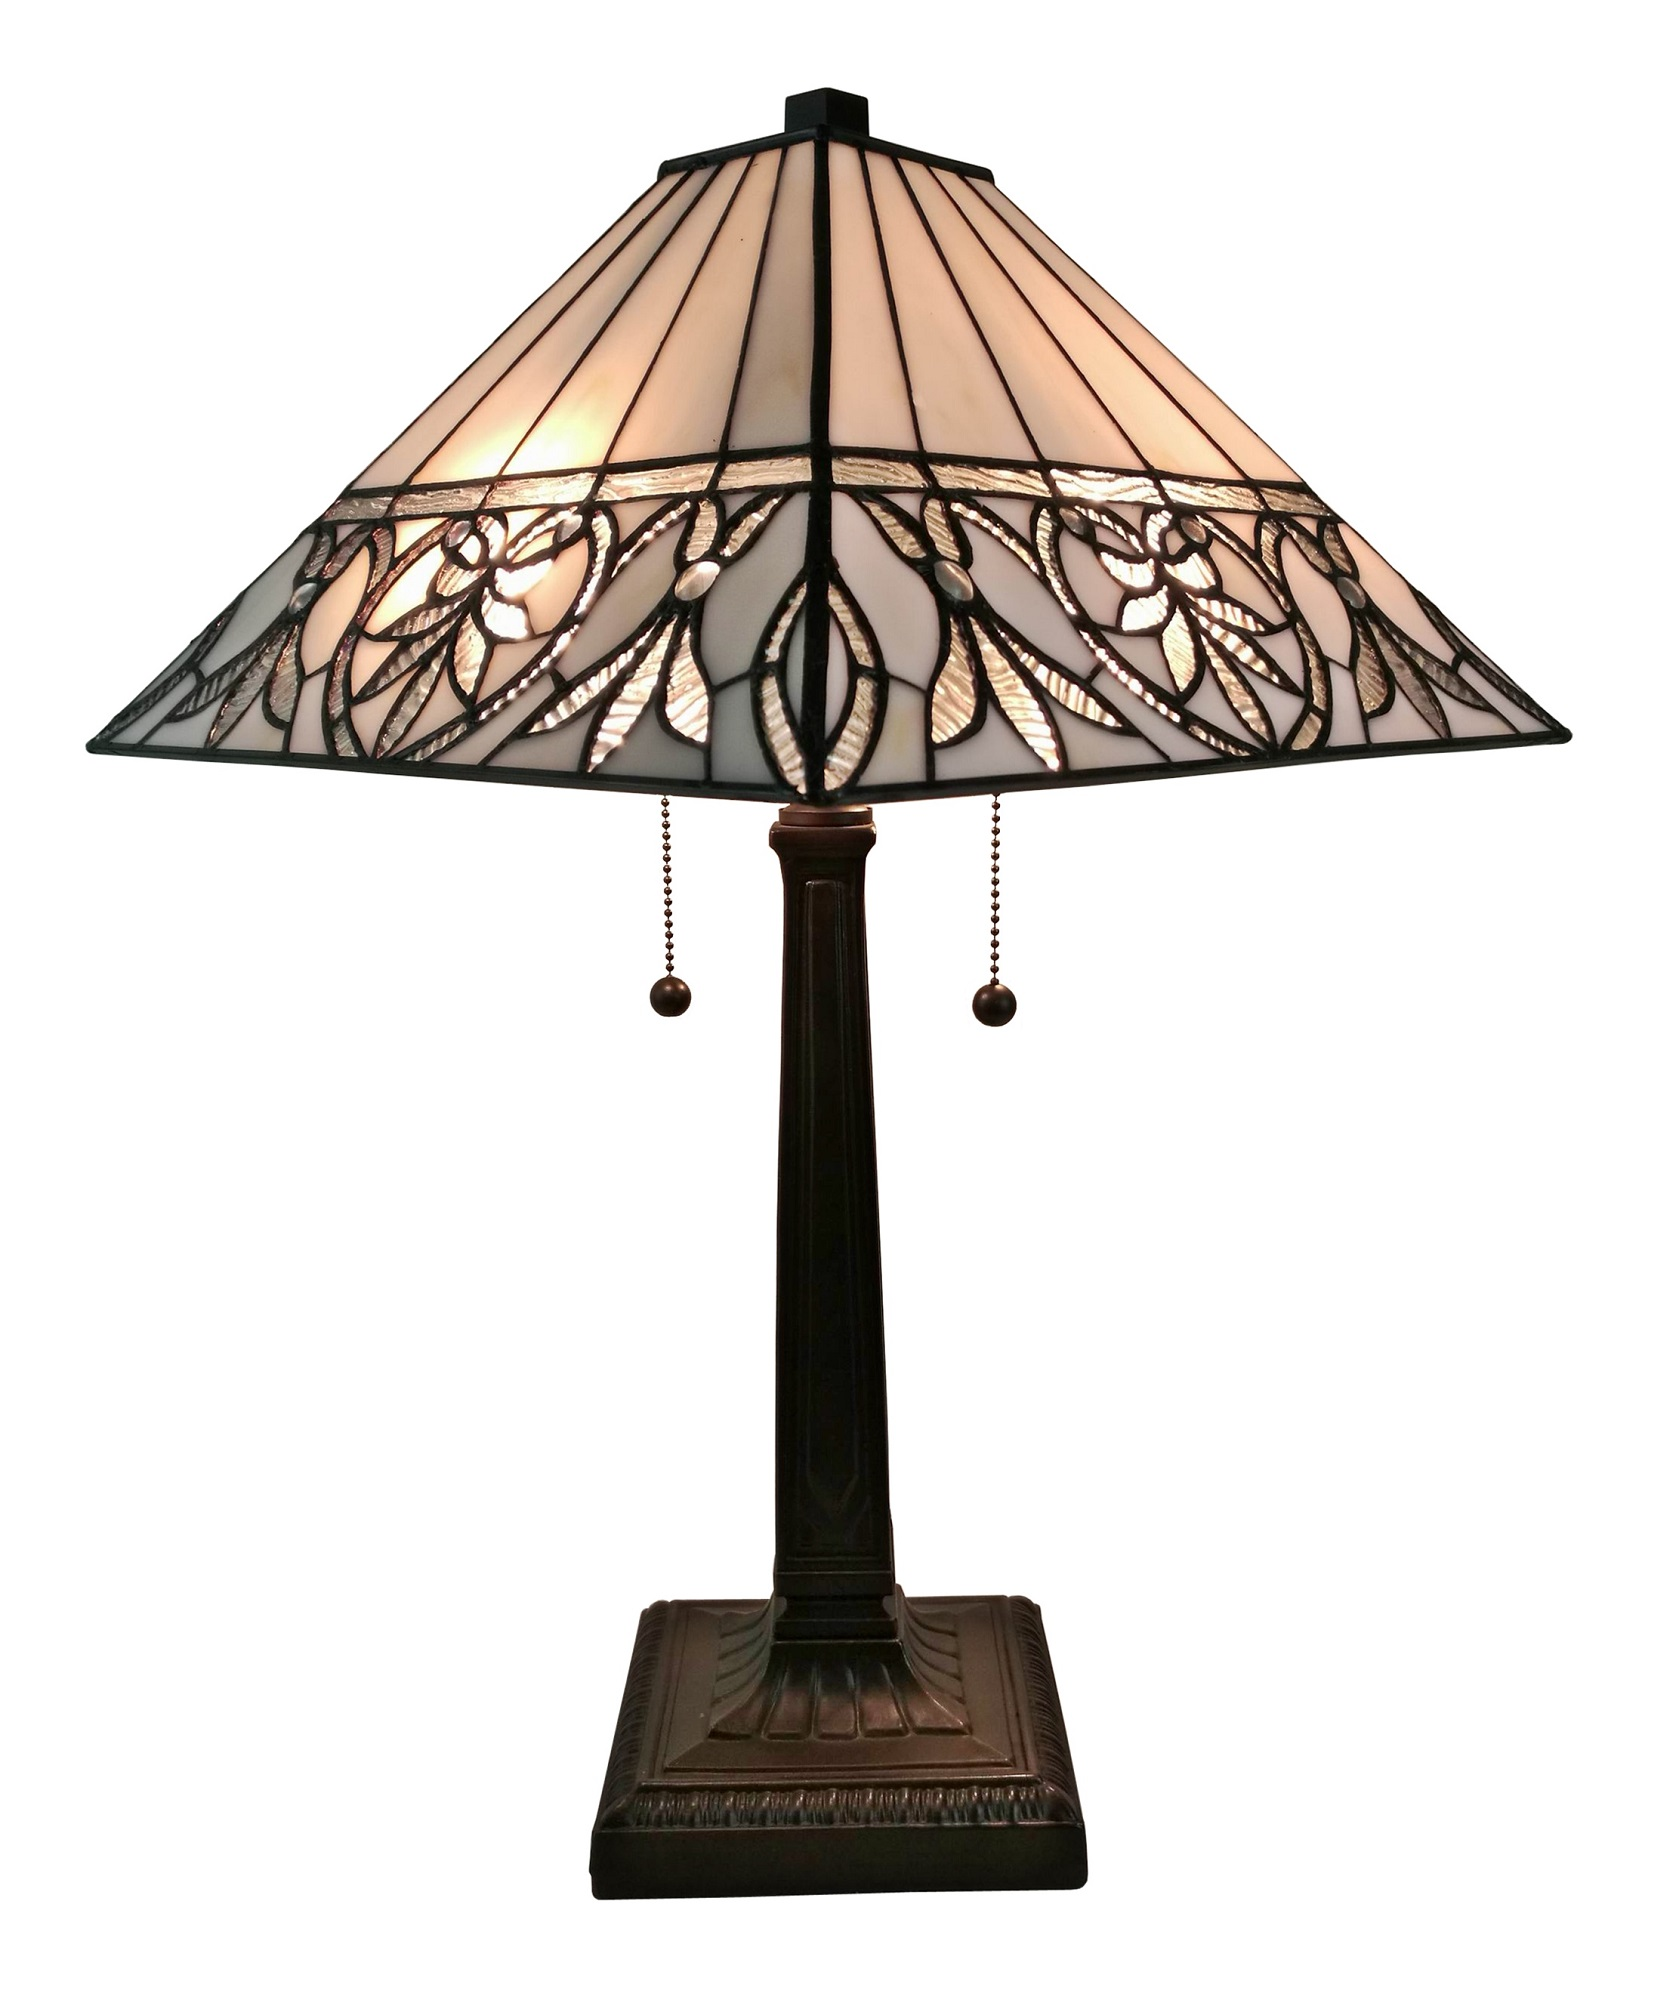 Amora Lighting AM303TL14 Tiffany Style White Floral Mission Table Lamp 22 Inches Tall by Amora Lighting